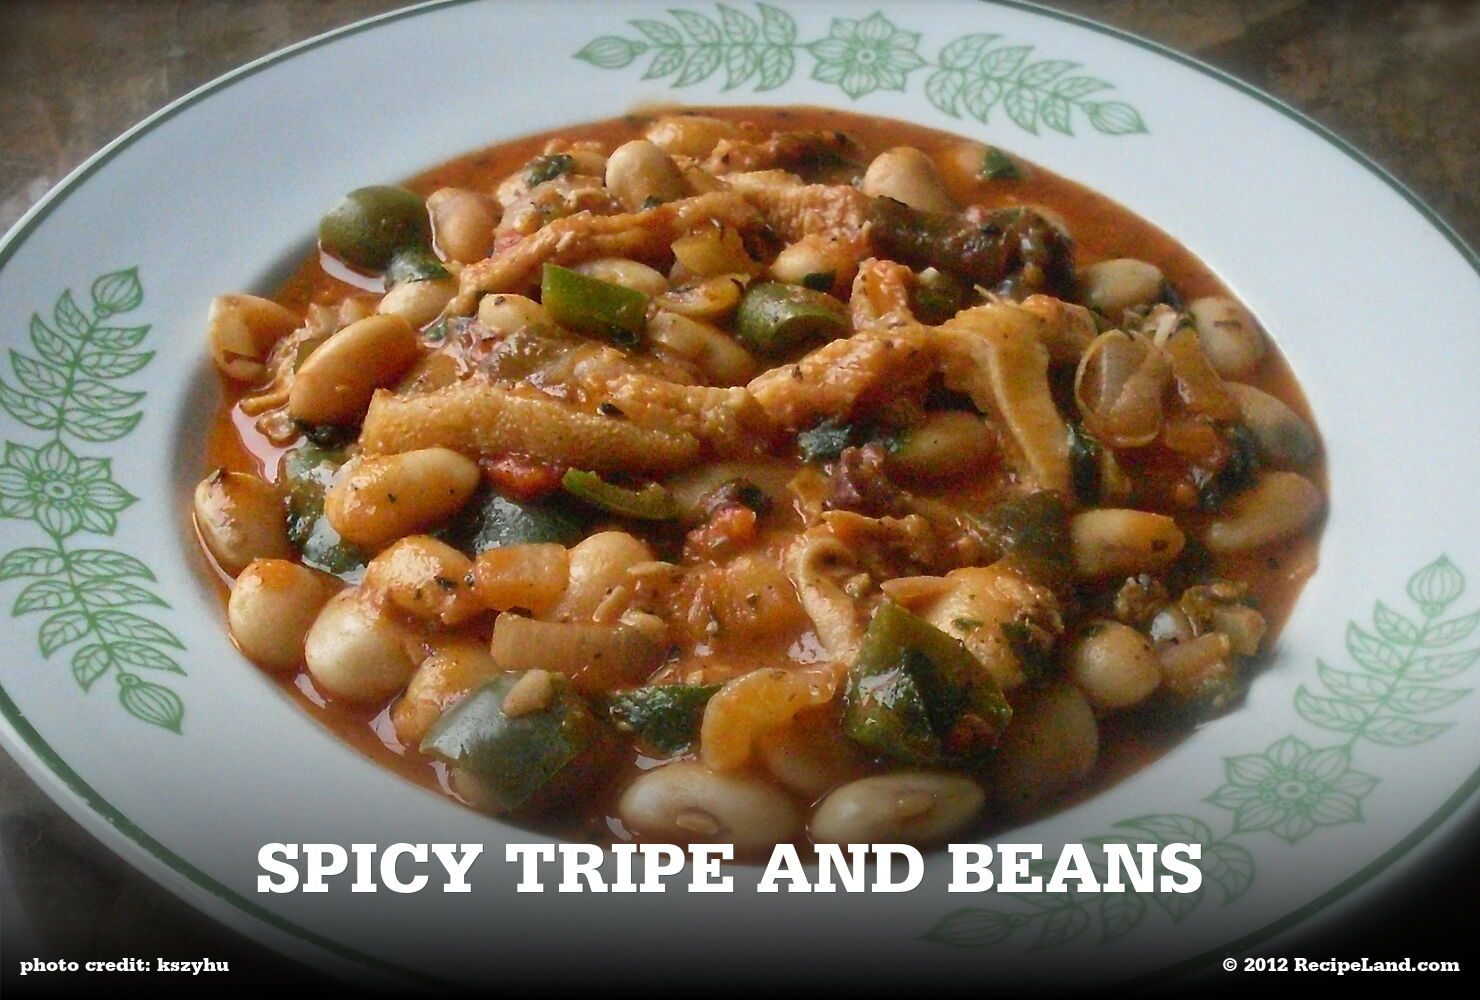 Spicy Tripe and Beans